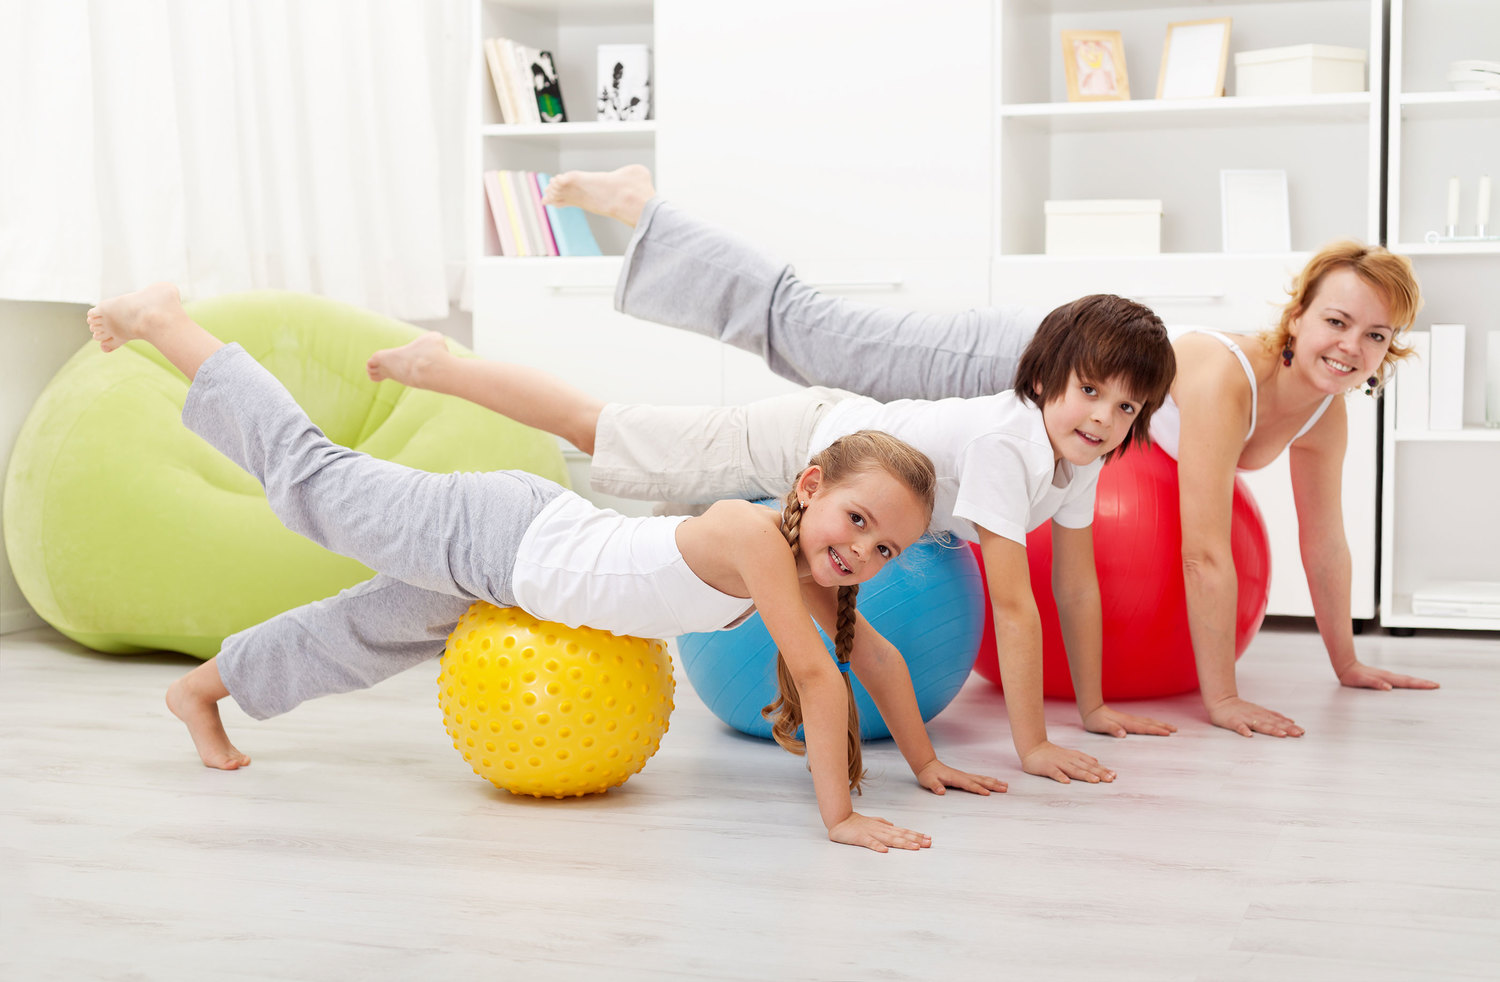 physical exercise makes kids smarter young outliers